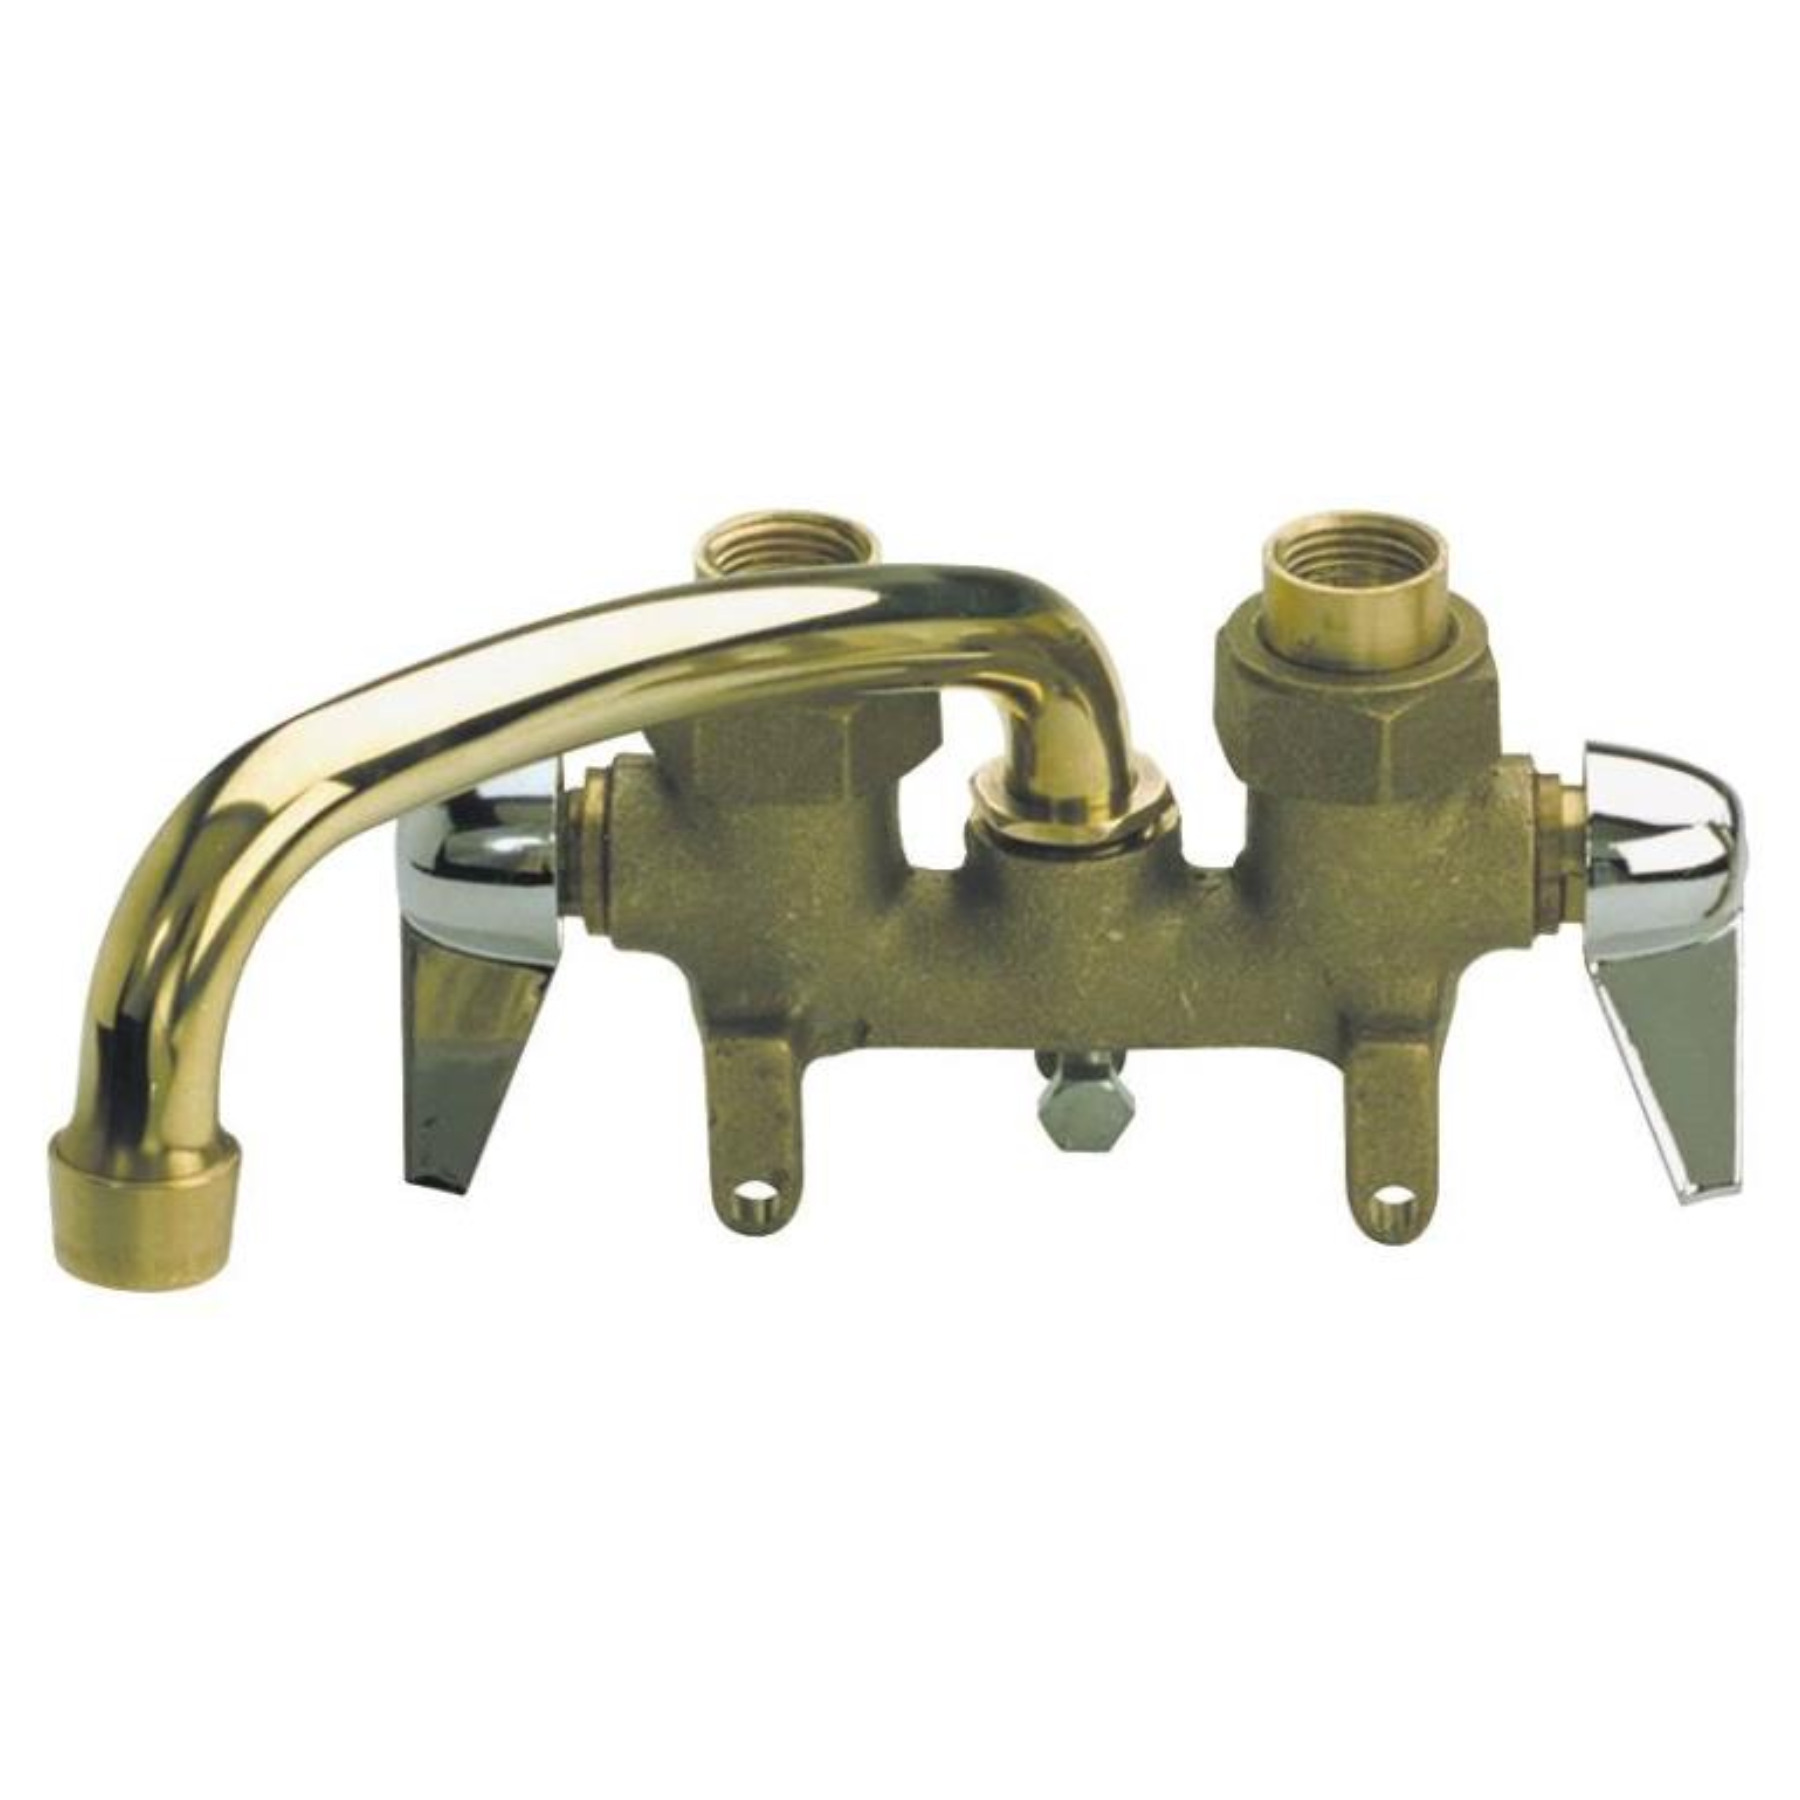 LAUNDRY TRAY FAUCET 2-HNDL BRS